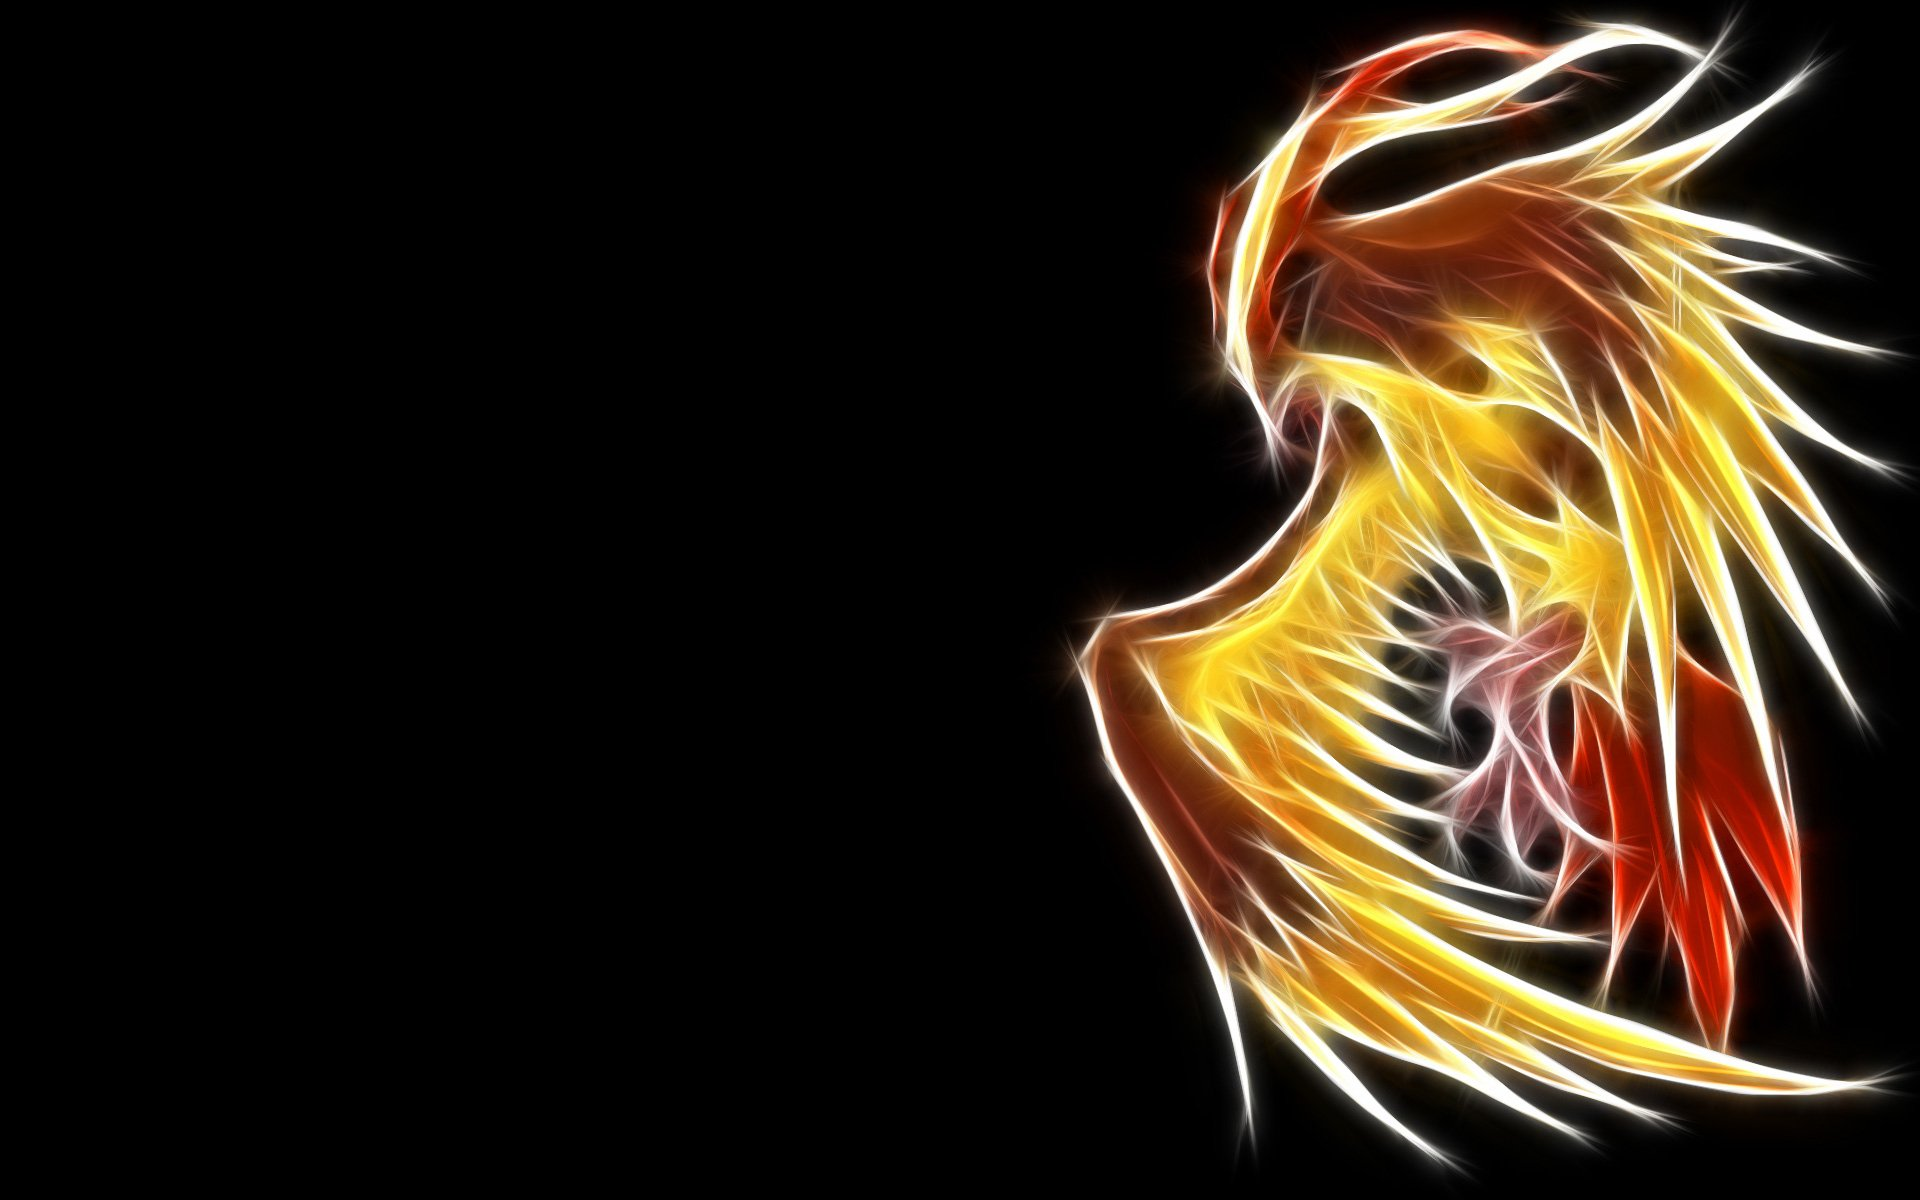 Video Game - Pokémon  Pidgeot (Pokémon) Wallpaper